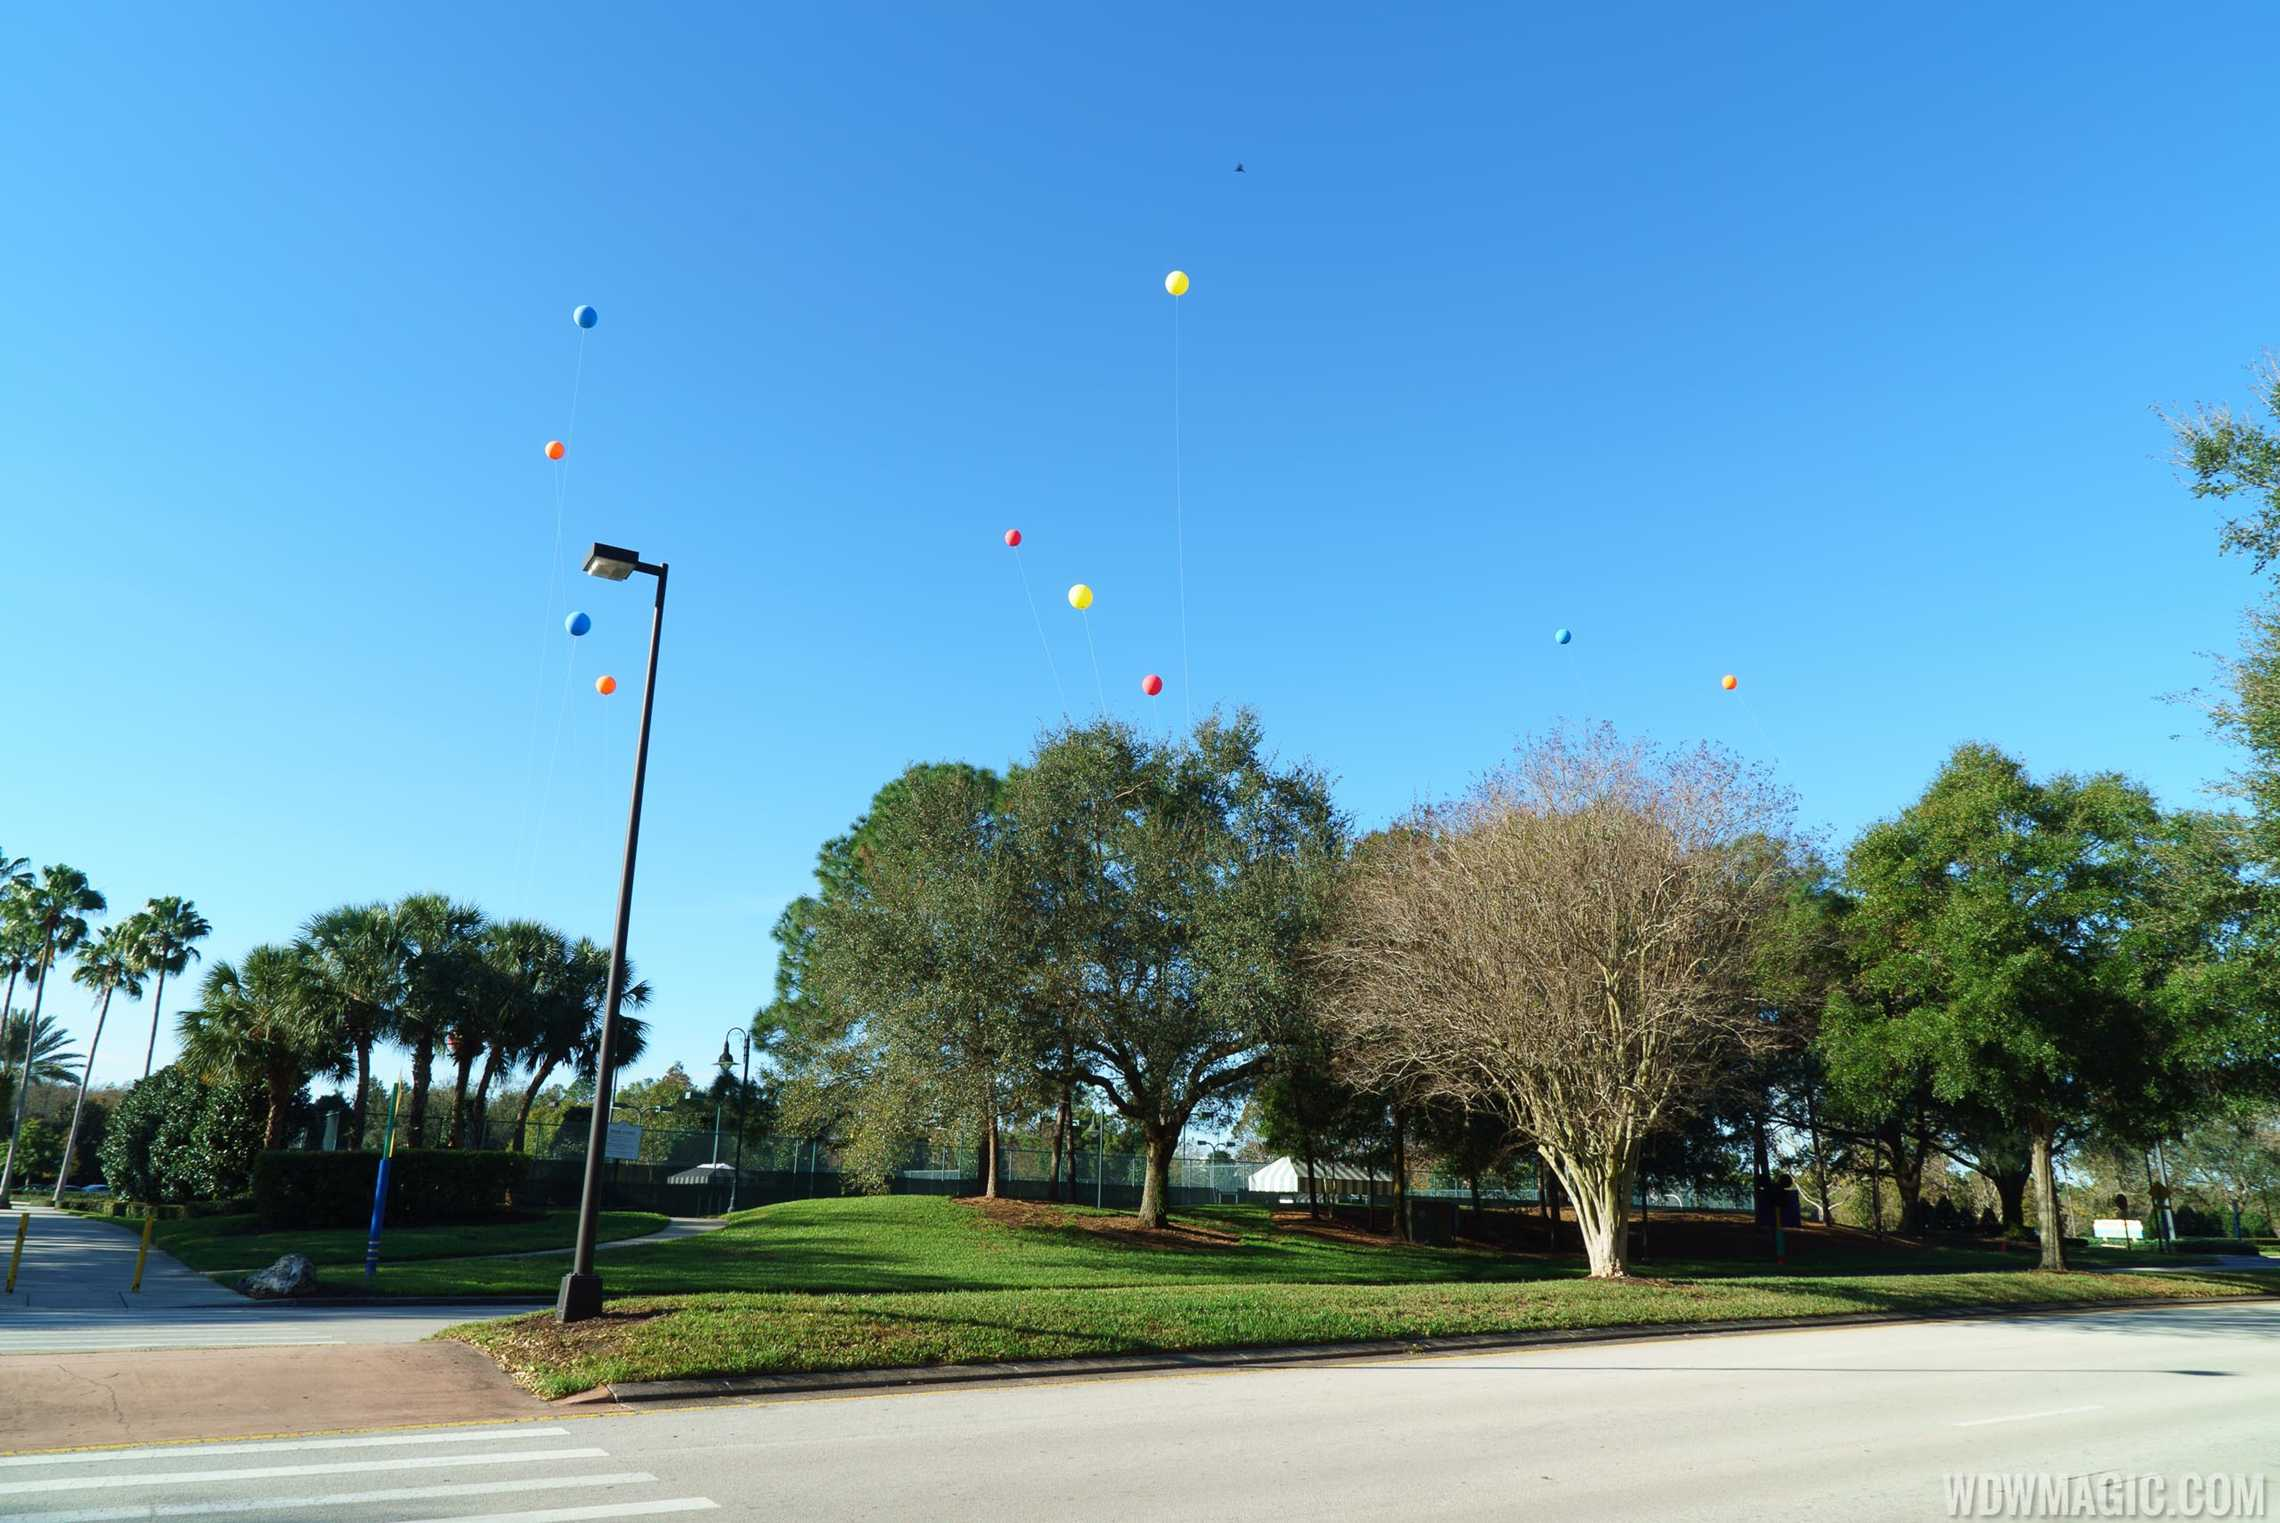 Balloons over then tennis courts